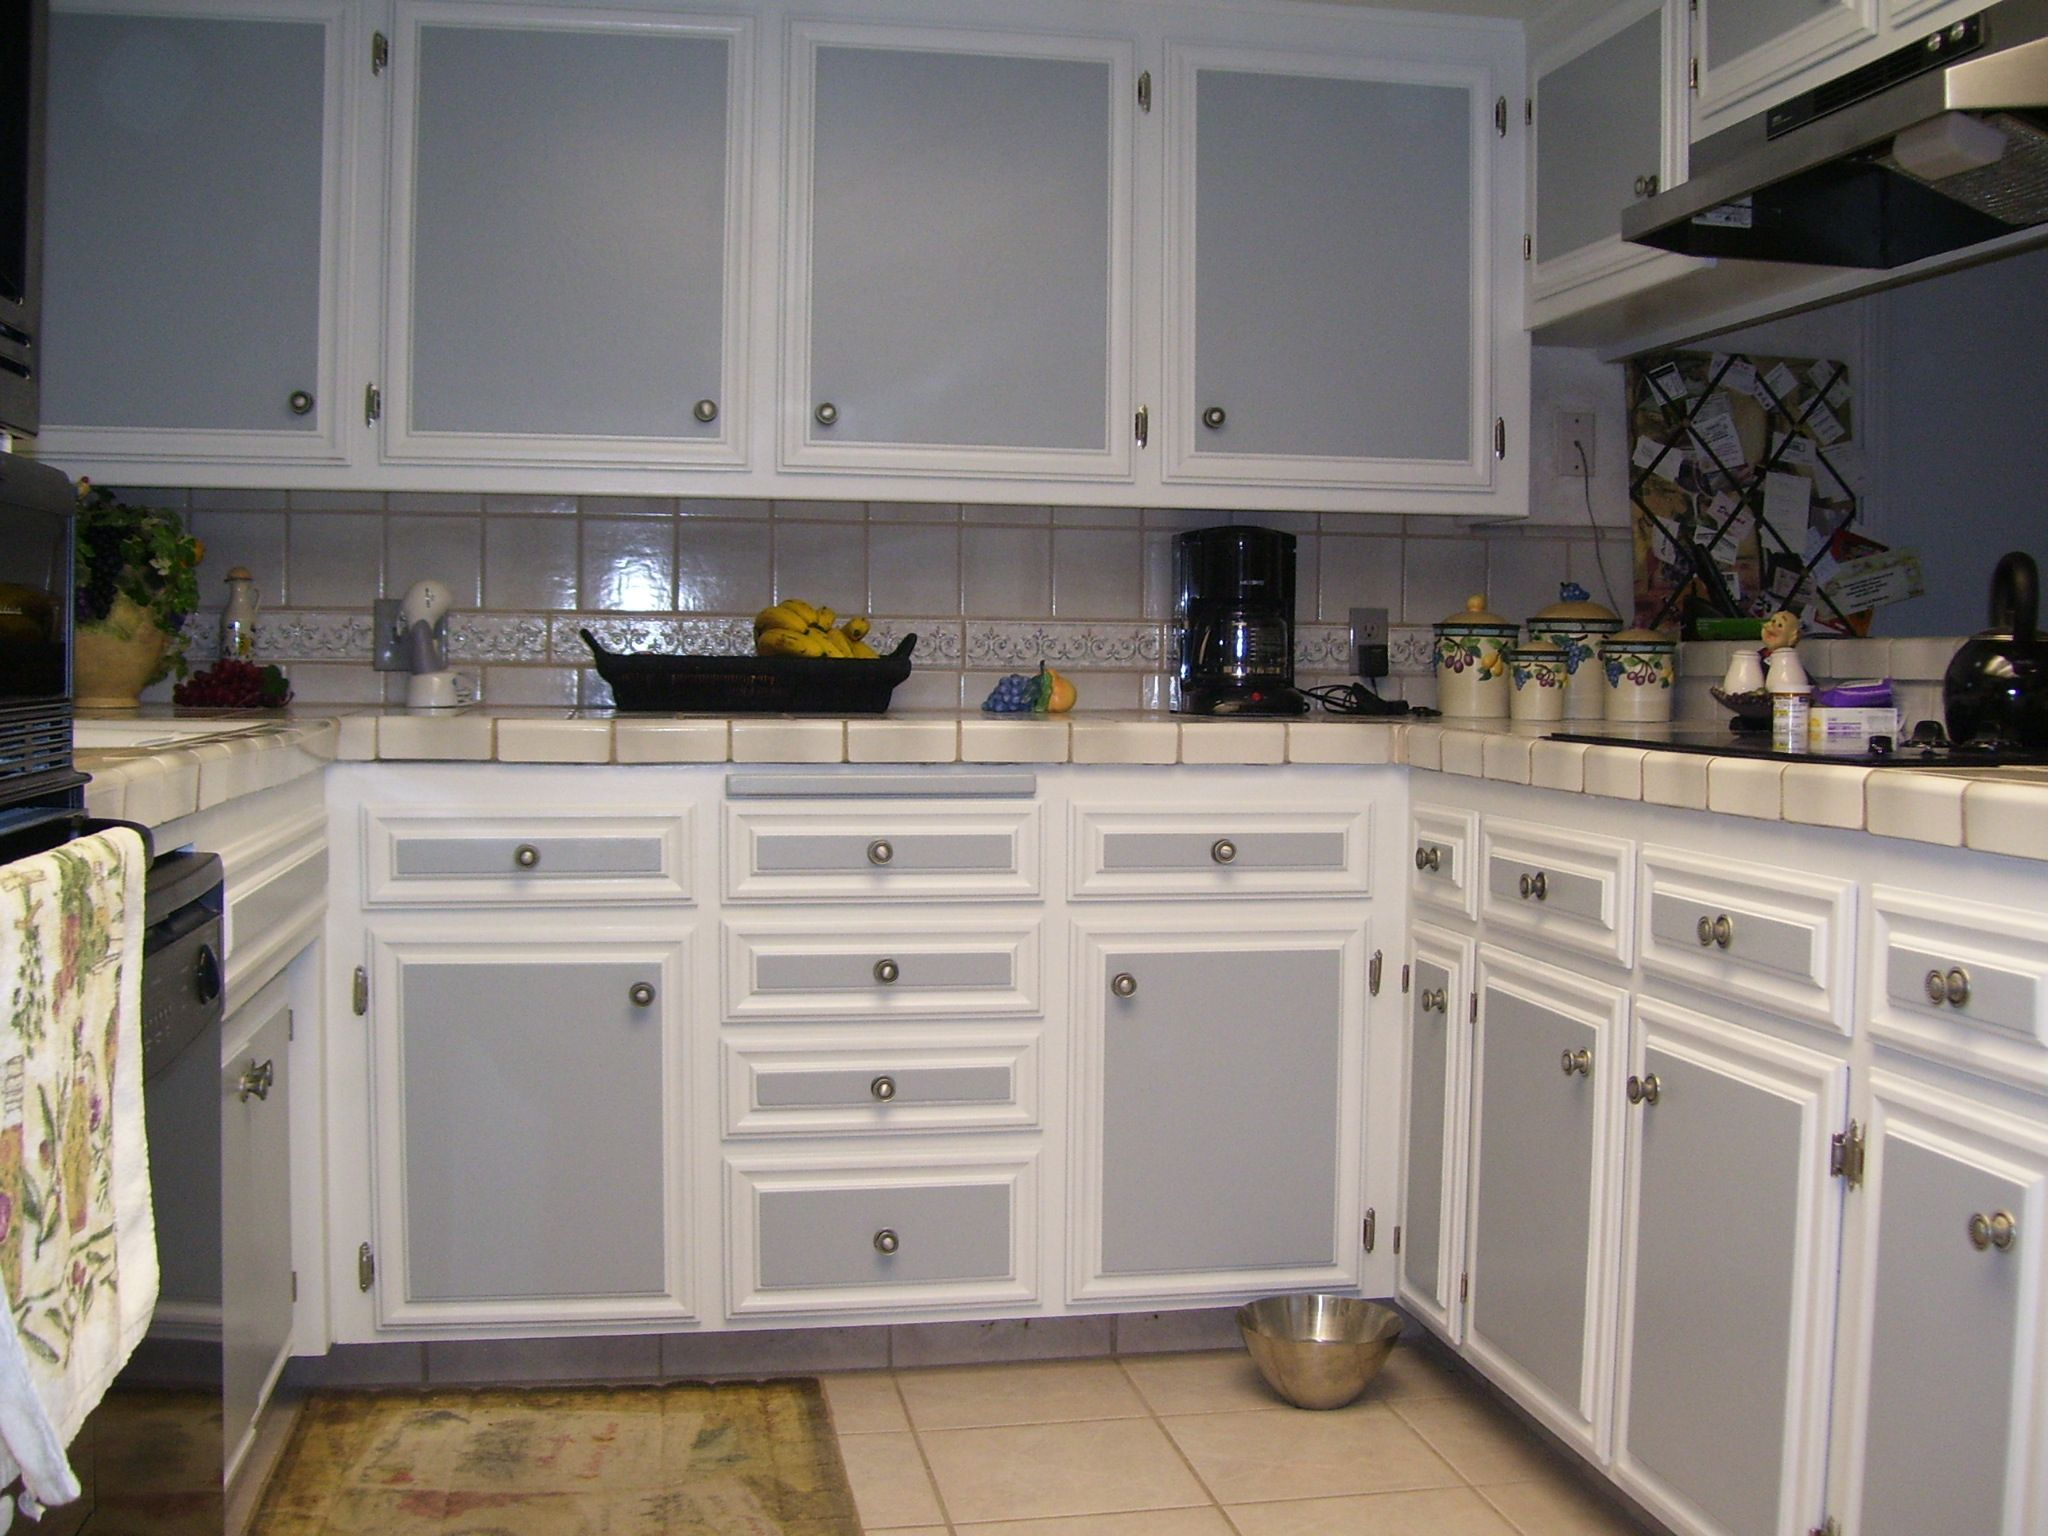 Kitchen Tiled Walls Kitchenwhite Kitchen Cabinet Grey Door Brown Tile Floor Ceramic